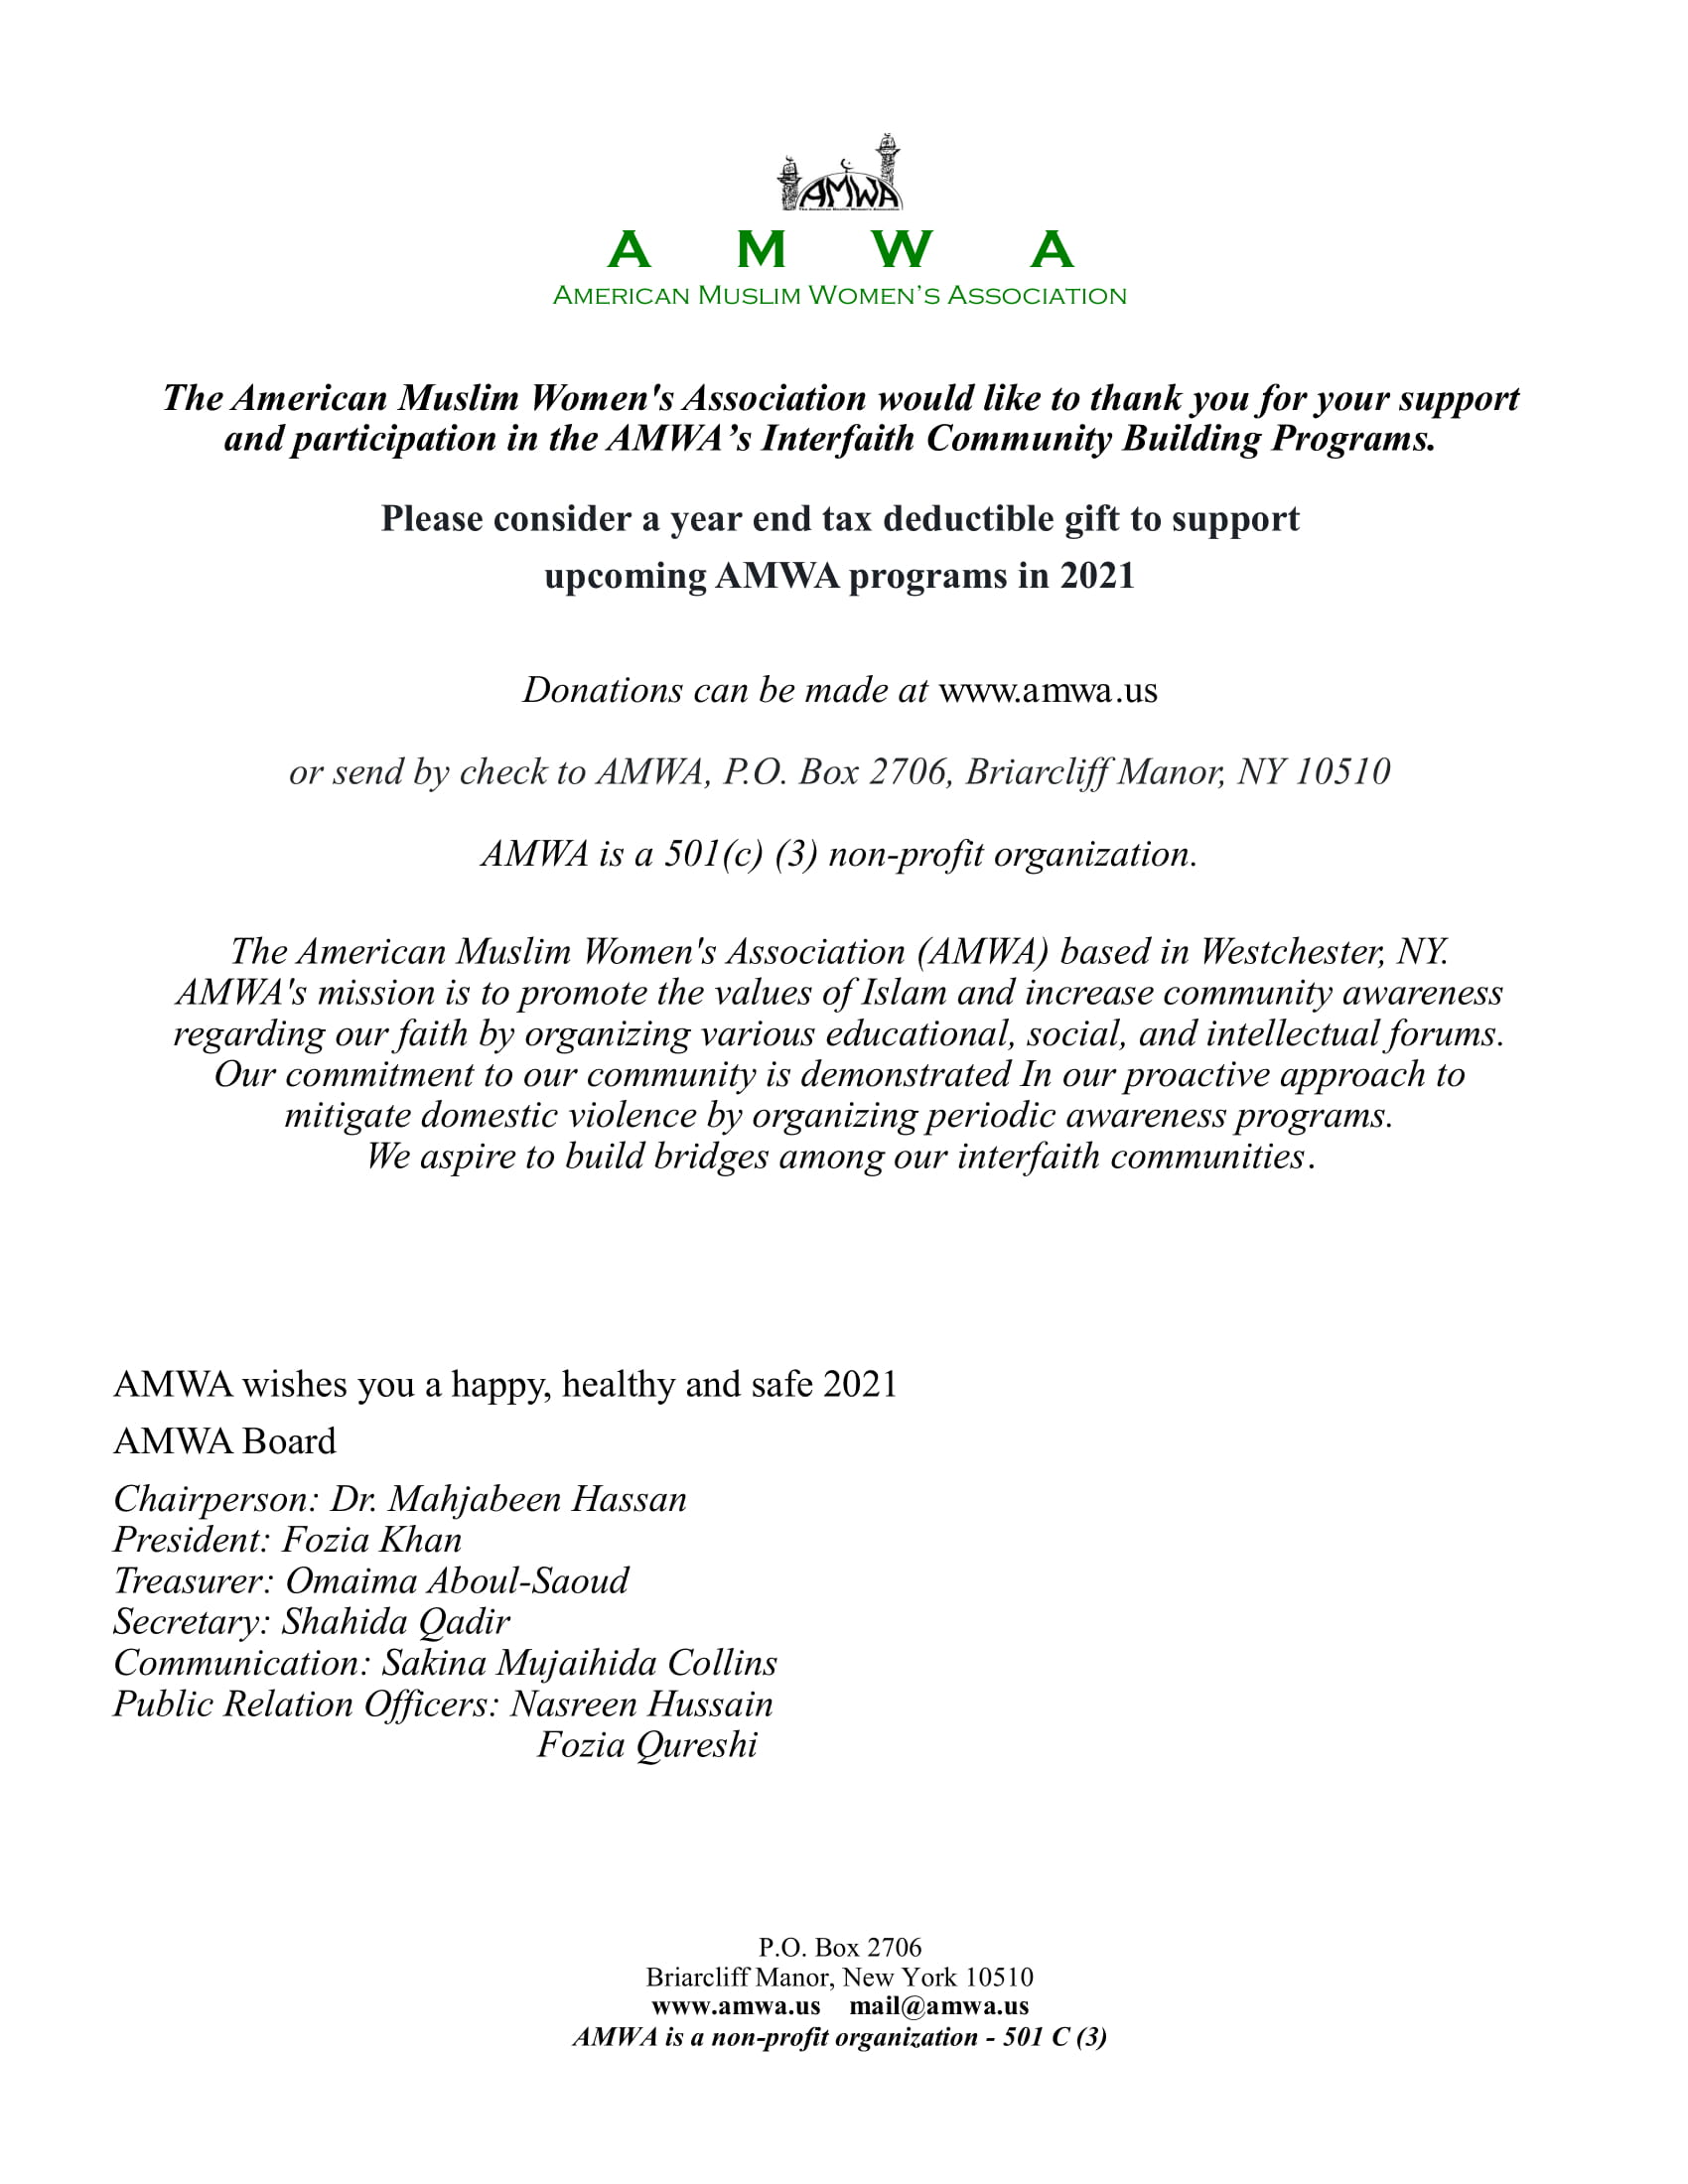 AMWA's End of year donation letter